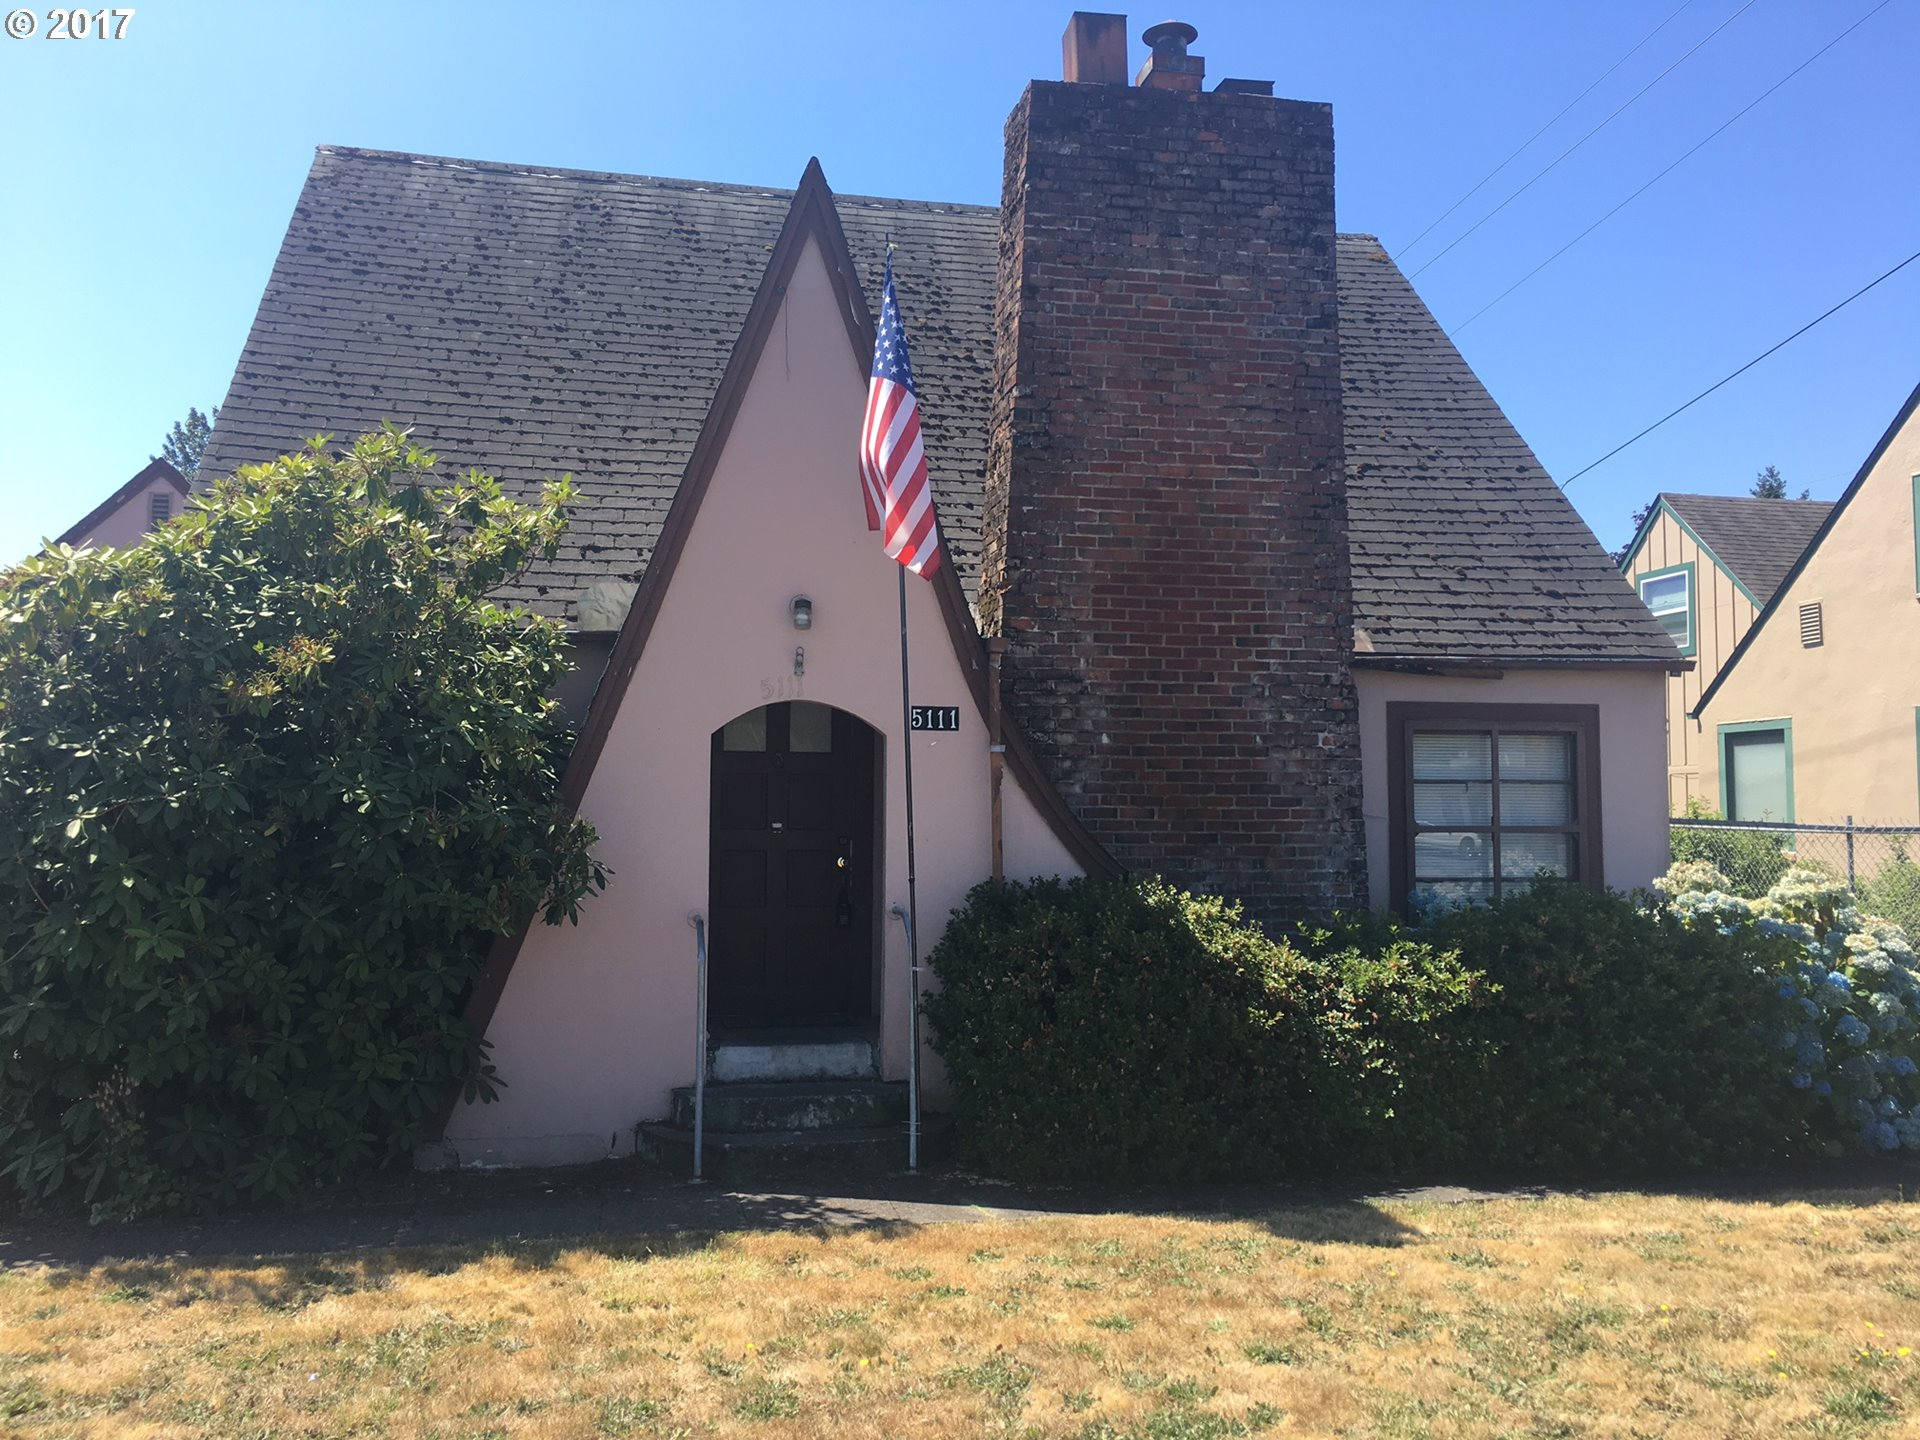 5111 MAIN ST, Springfield, OR 97478